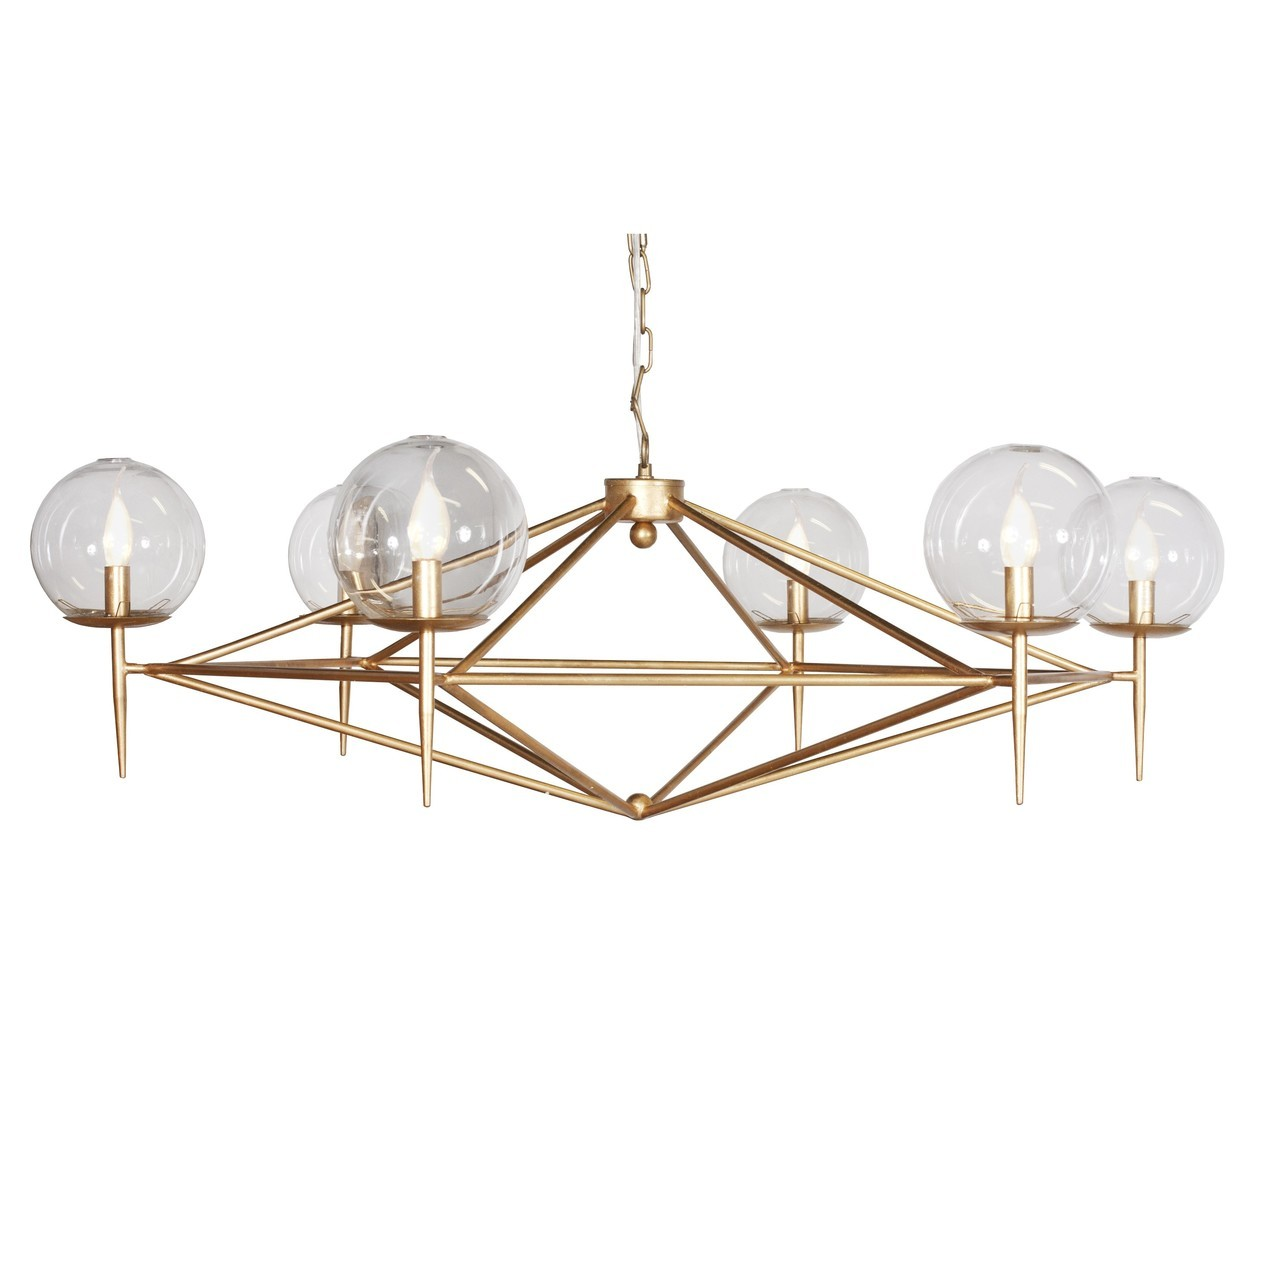 Worlds Away Rowan Chandelier with Hand Blown Glass Globes